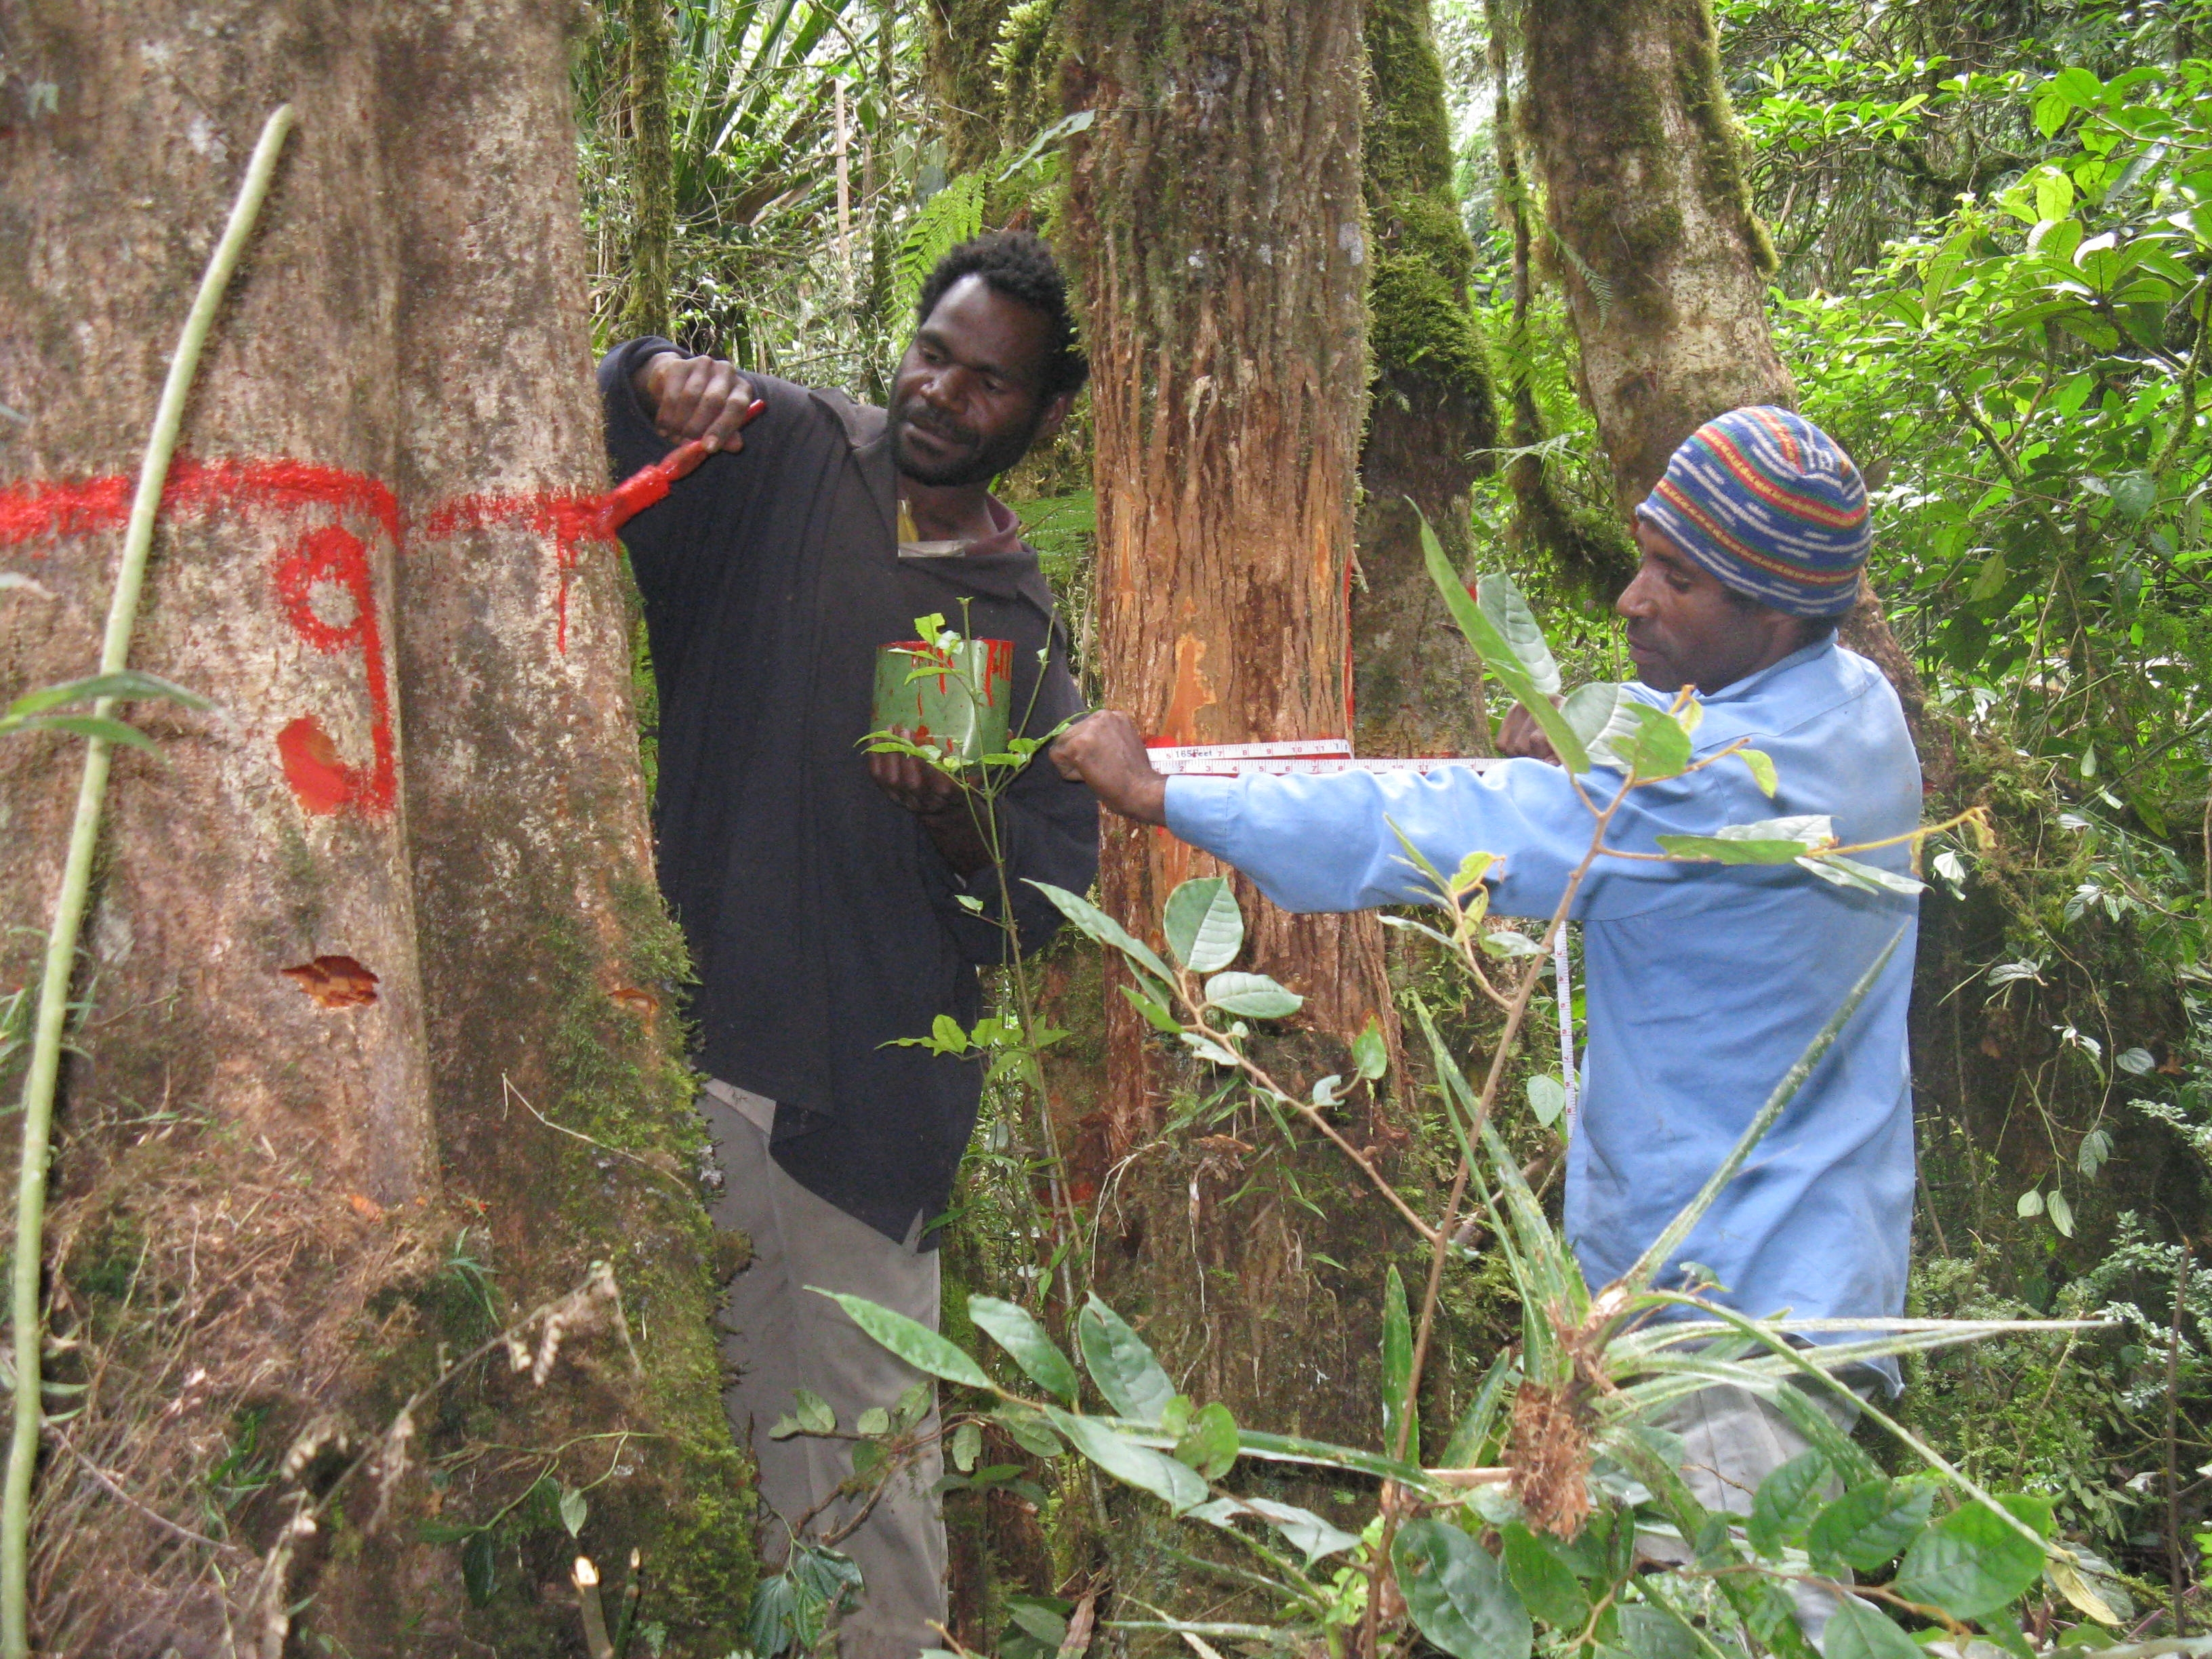 Men measure the girth of a tree in Papua New Guinea. Photo by Julian Fox